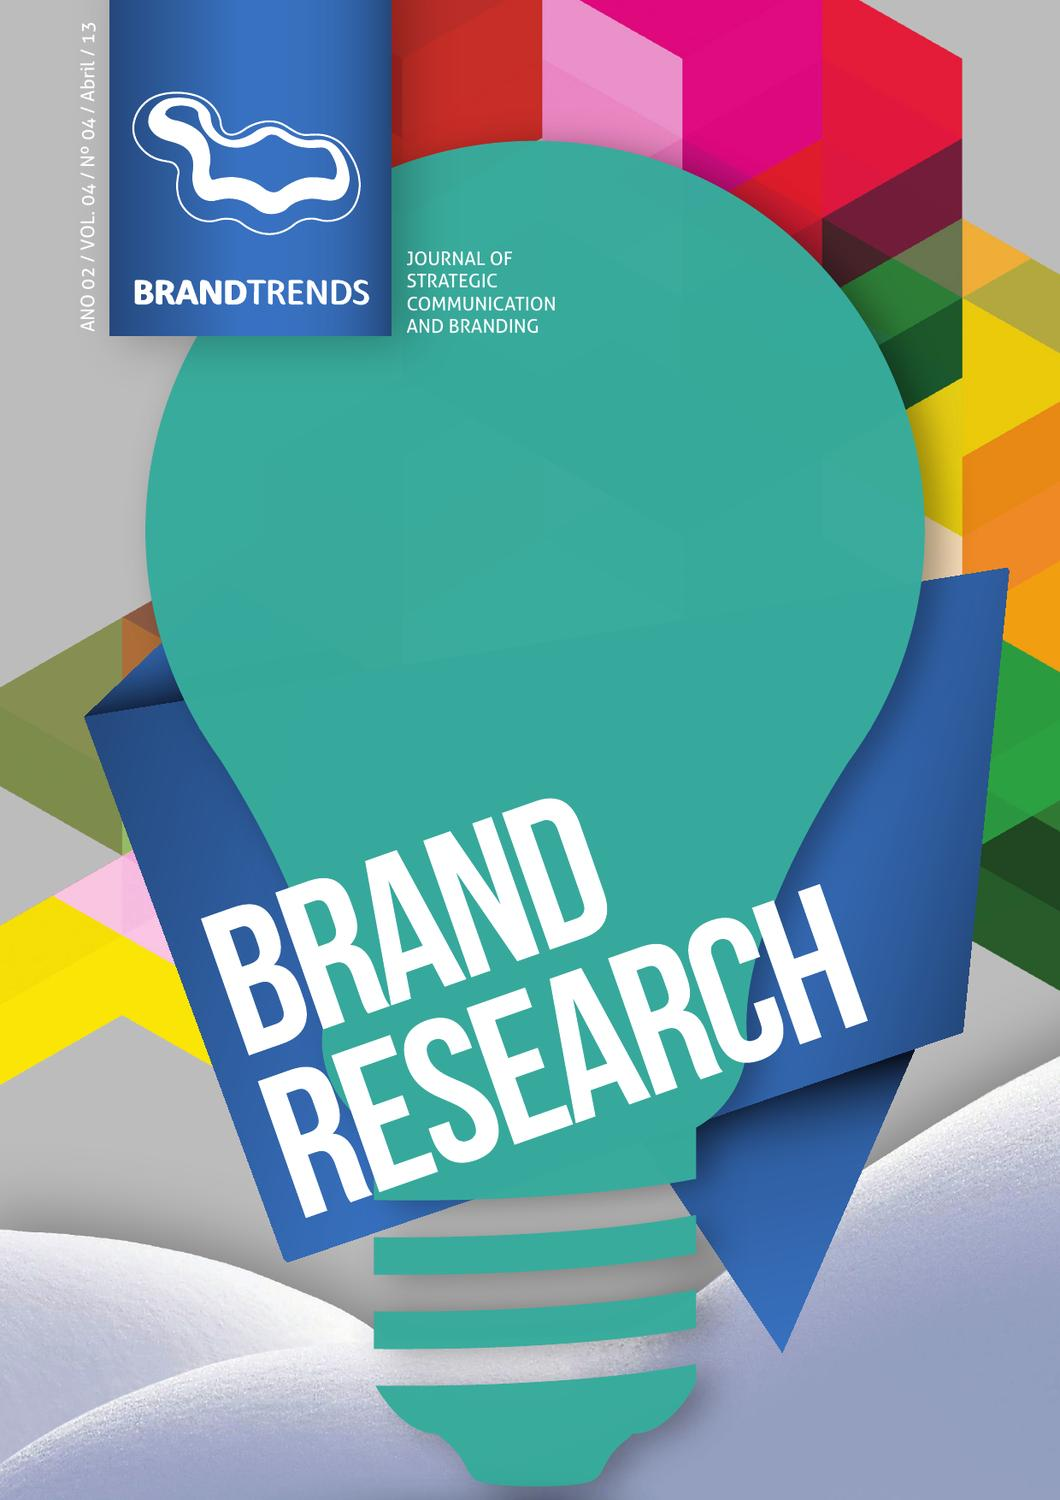 Brandtrends journal n 4 by leonel brites issuu fandeluxe Choice Image